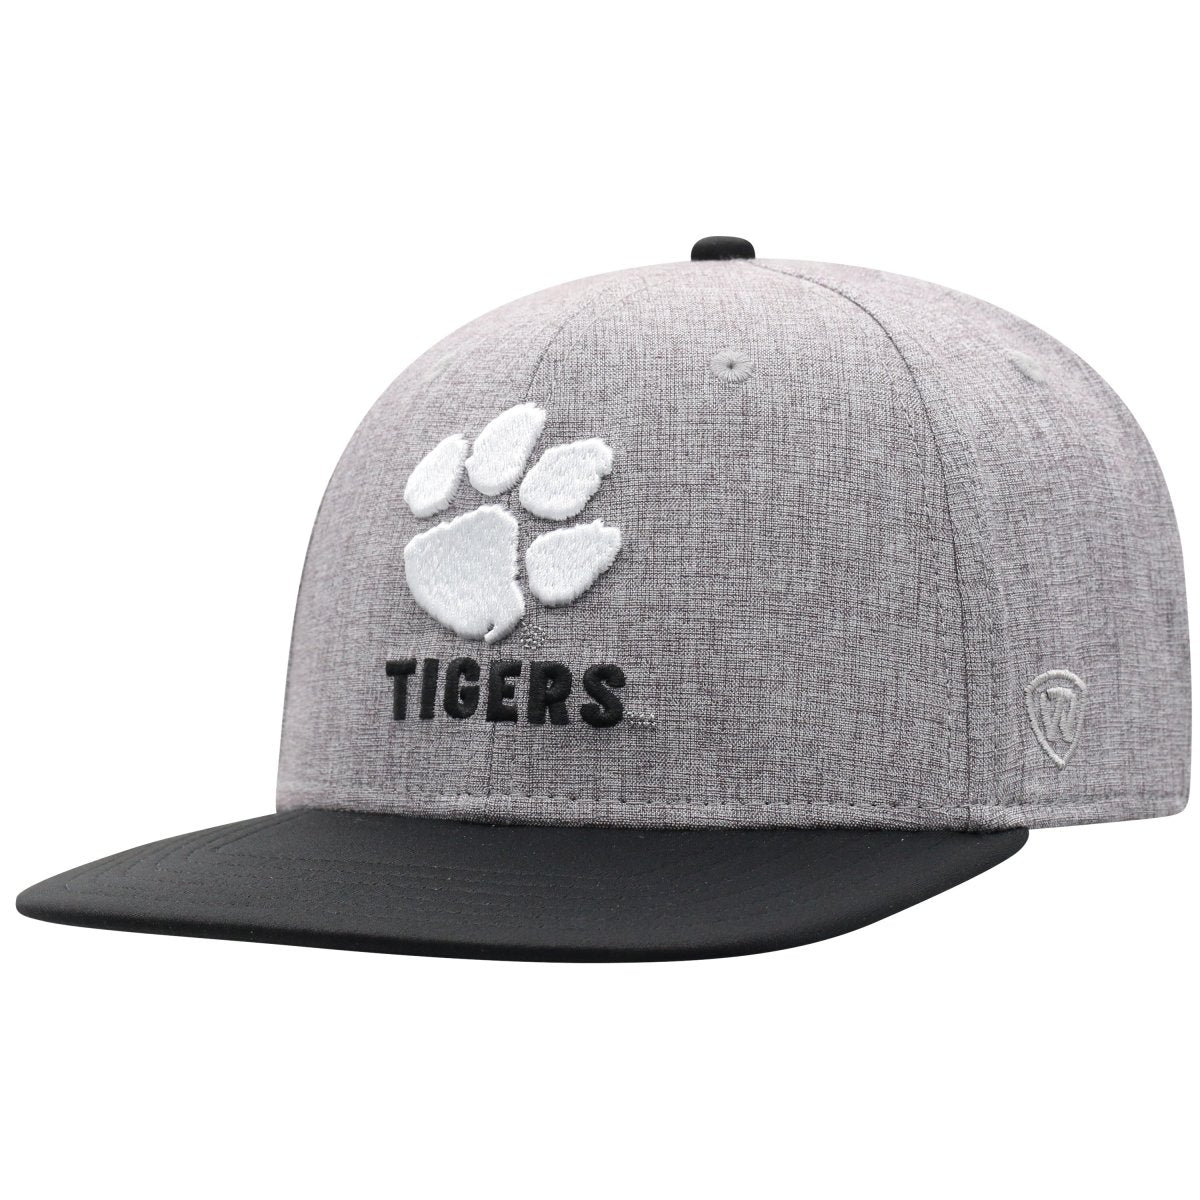 Top of the World Clemson Tigers Youth Black and Gray Fitted Hat - Mr. Knickerbocker